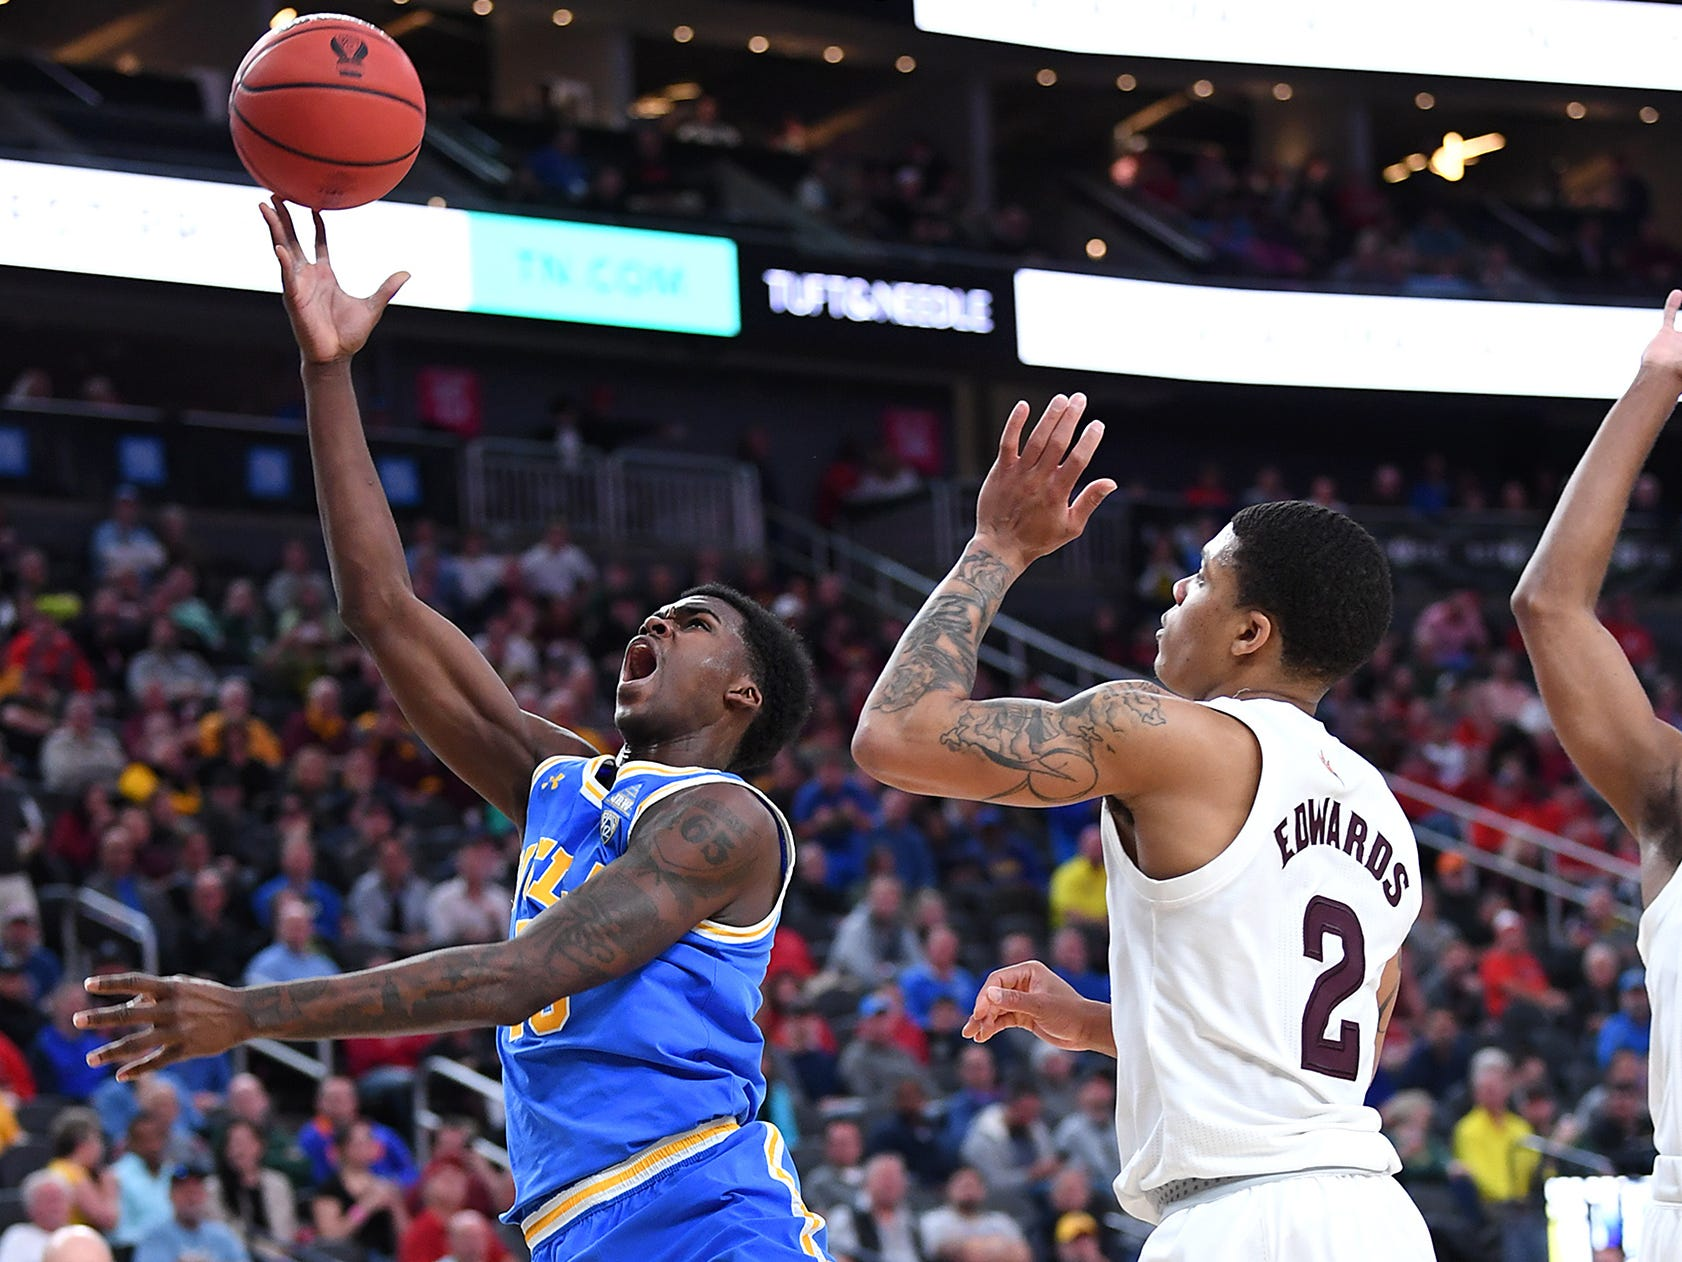 Mar 14, 2019; Las Vegas, NV, United States; UCLA Bruins guard Kris Wilkes (13) shoots inside the defense of Arizona State Sun Devils guard Rob Edwards (2) during the second half of a Pac-12 conference tournament game at T-Mobile Arena.